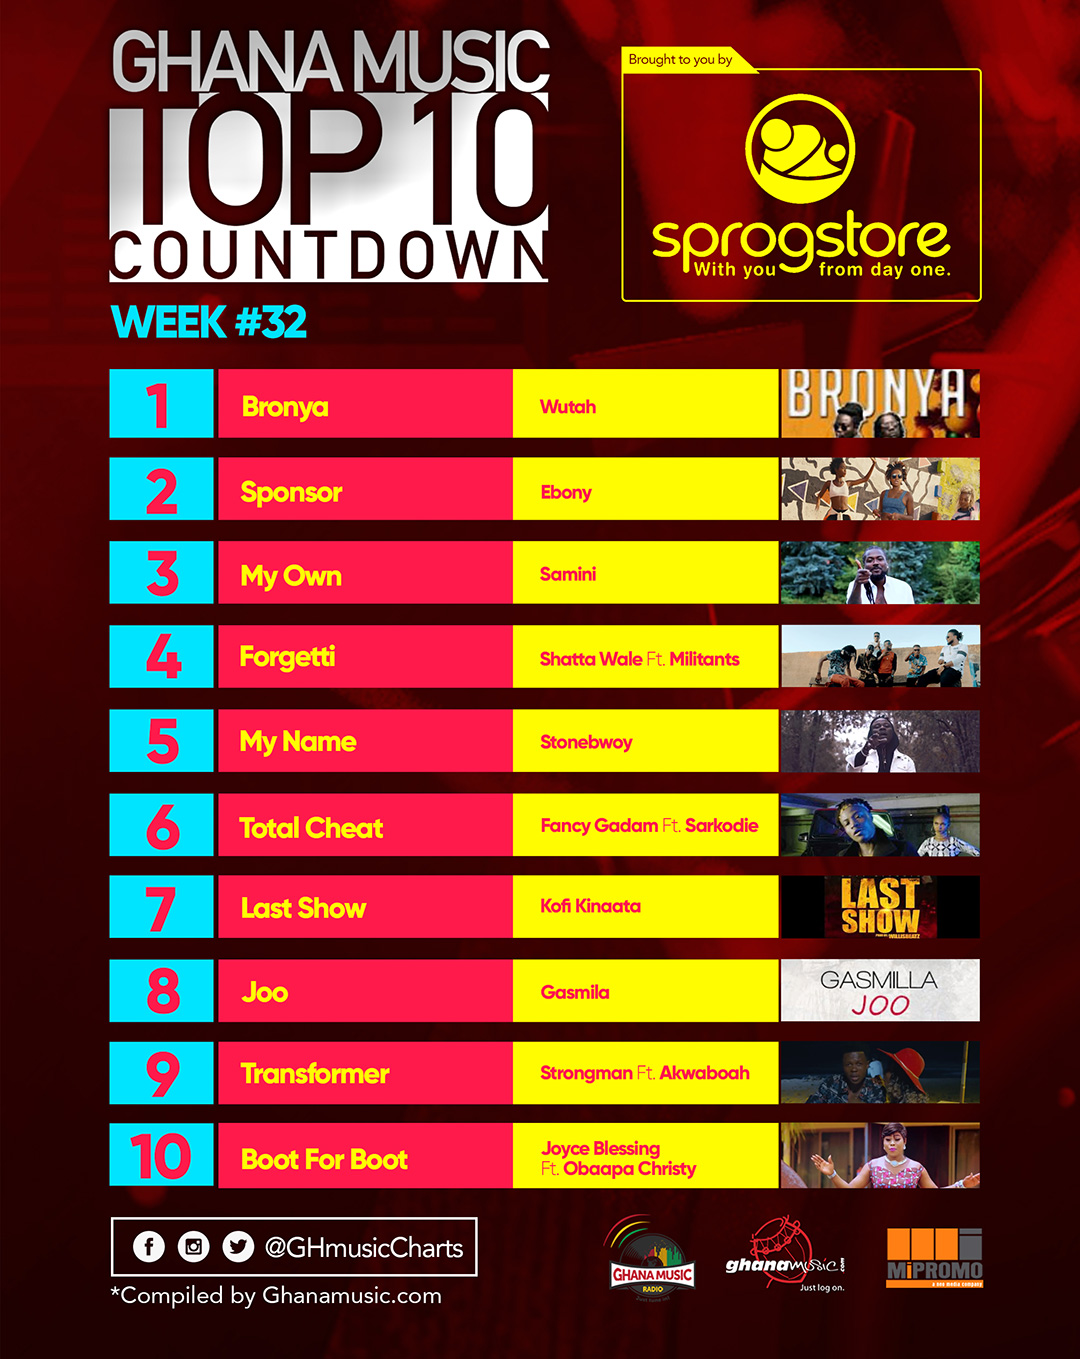 Week #32: Week ending Saturday, August 12th, 2017. Ghana Music Top 10 Countdown.